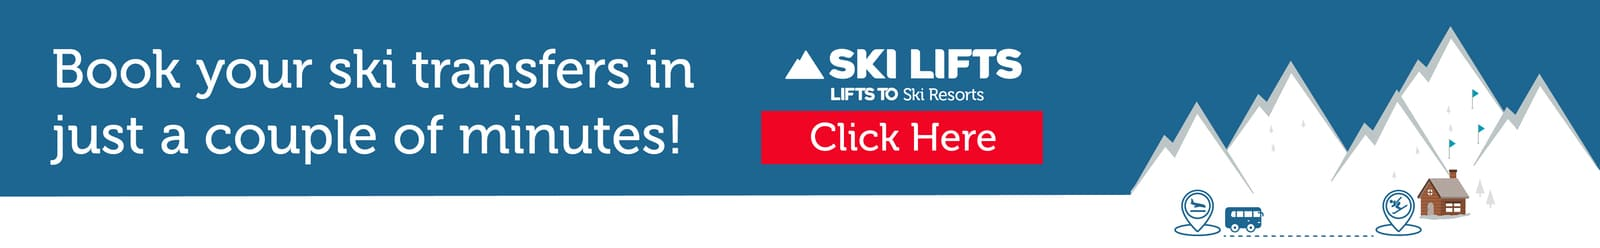 Book your ski transfers in just a couple of minutes